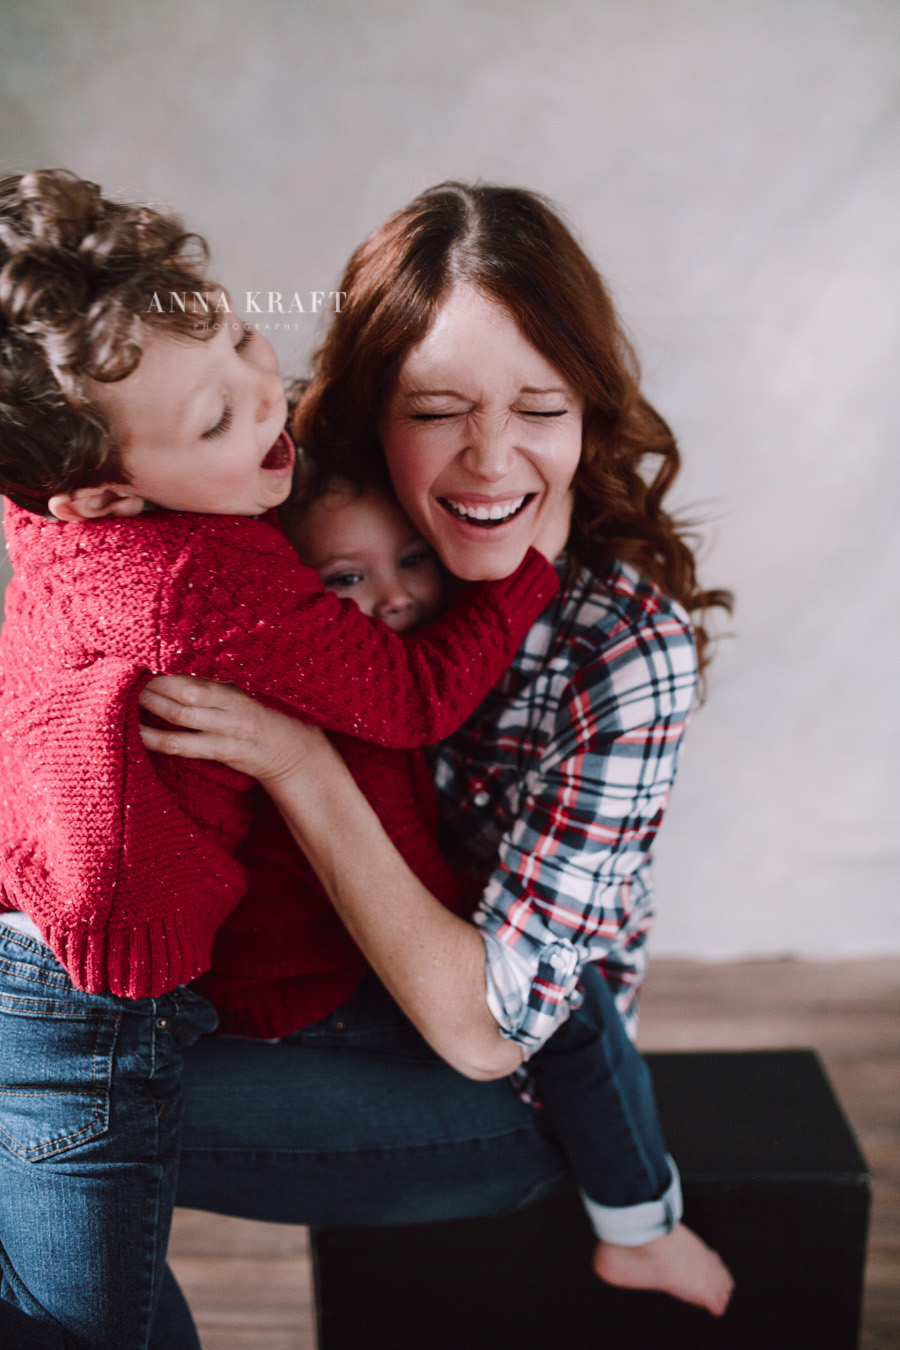 anna_kraft_photography_georgetown_square_studio_family_portrait-25.jpg